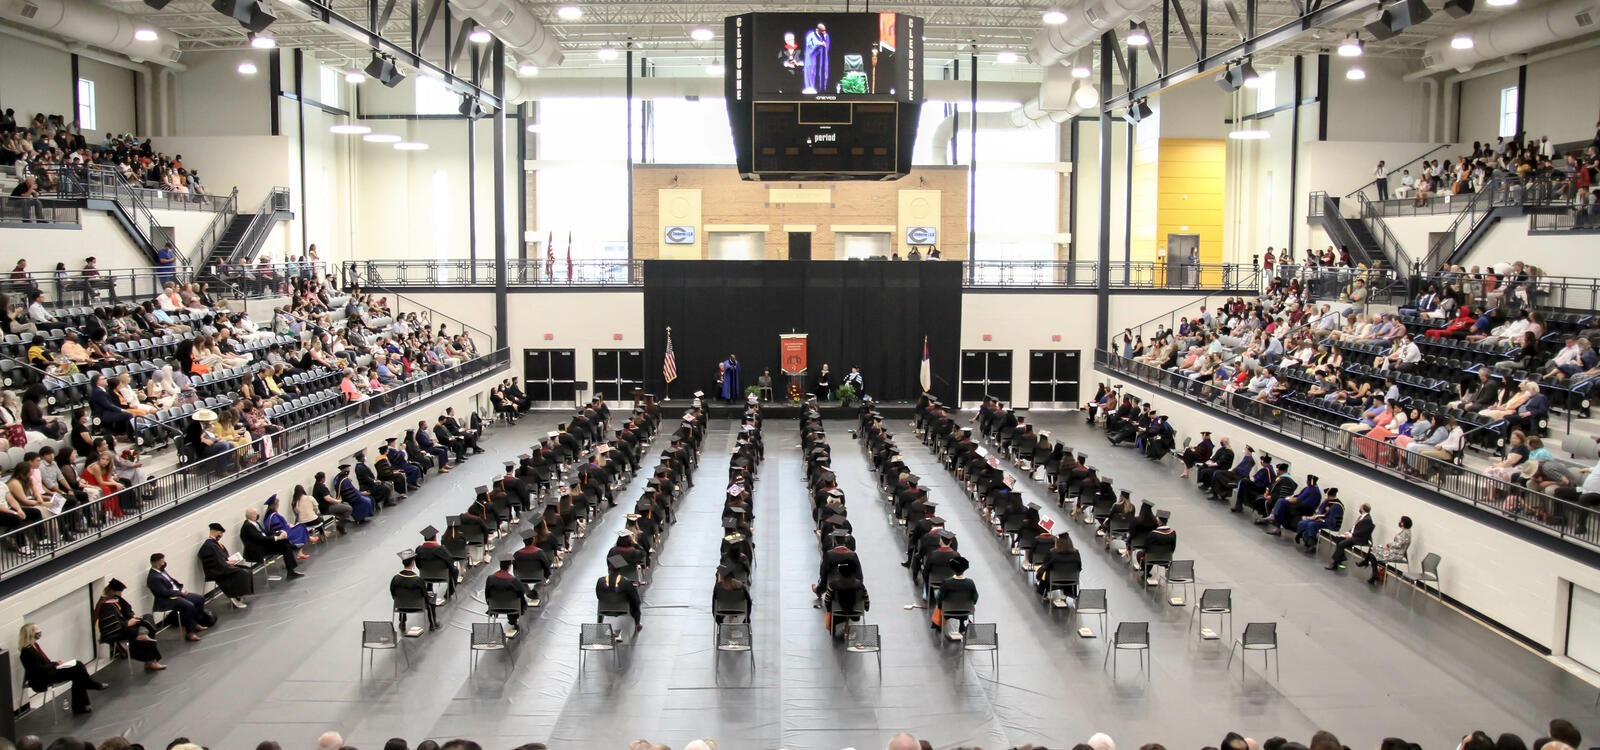 Graduates sitting in rows in a large stadium with guests to the right, left, and back and the stage to the front